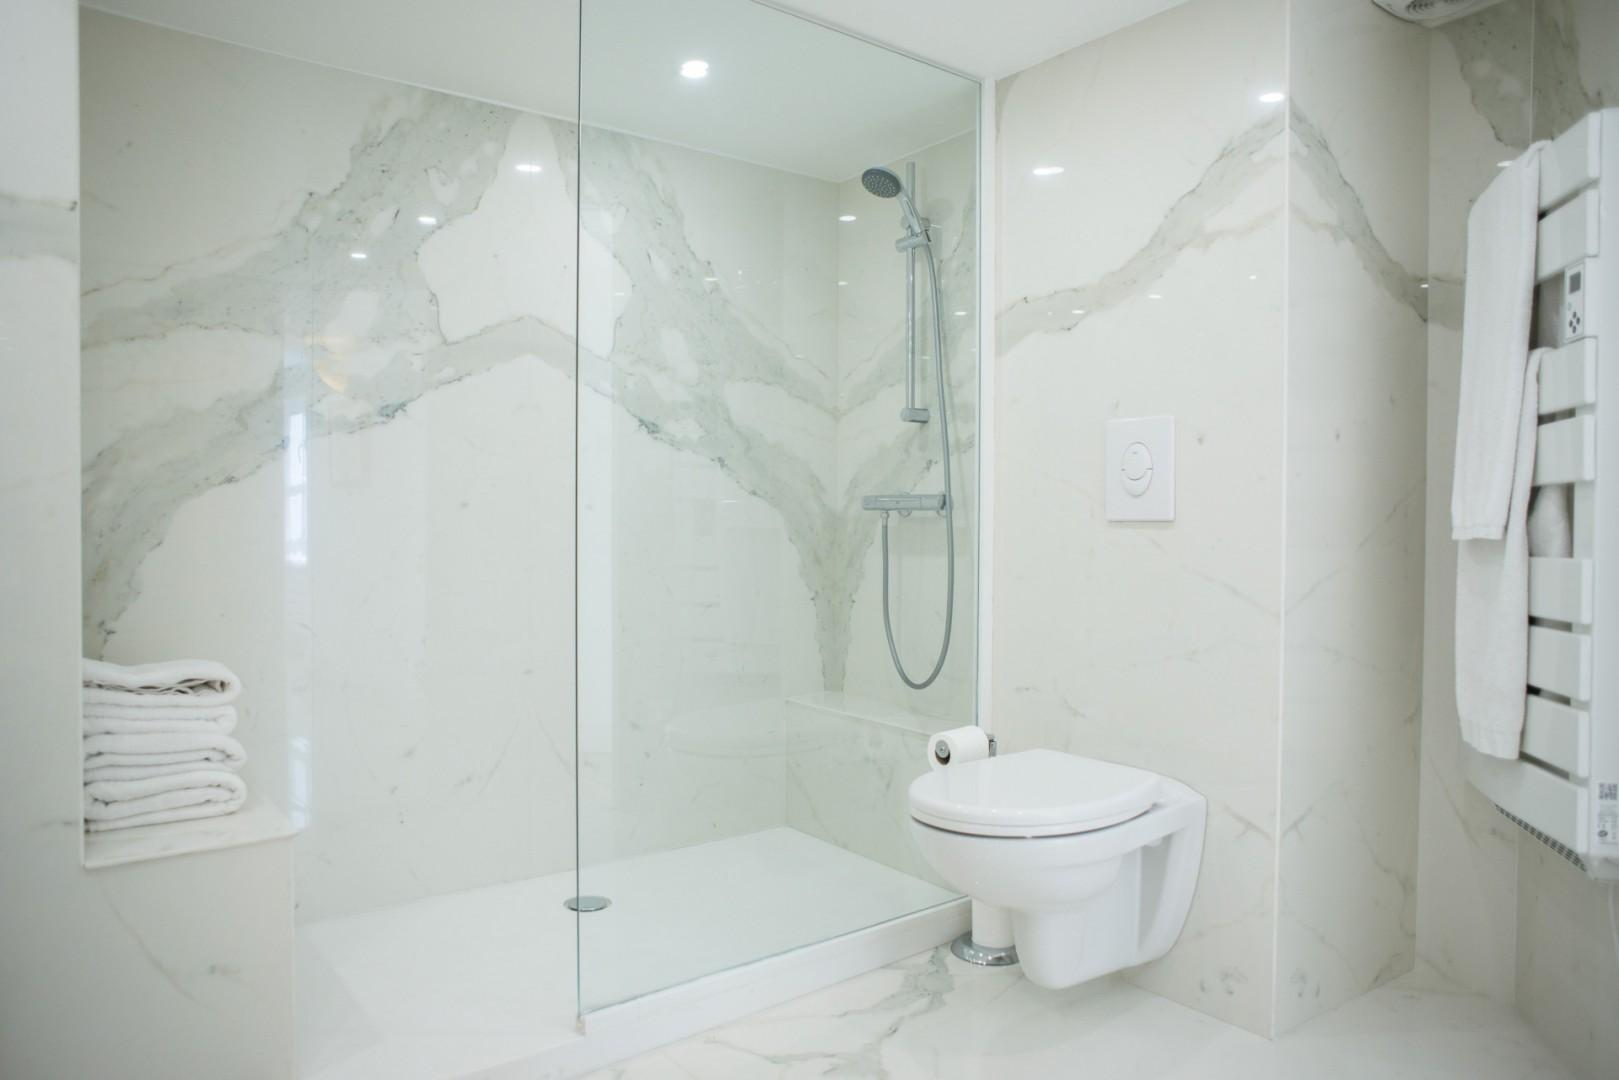 Start your day in Paris with an energizing shower!